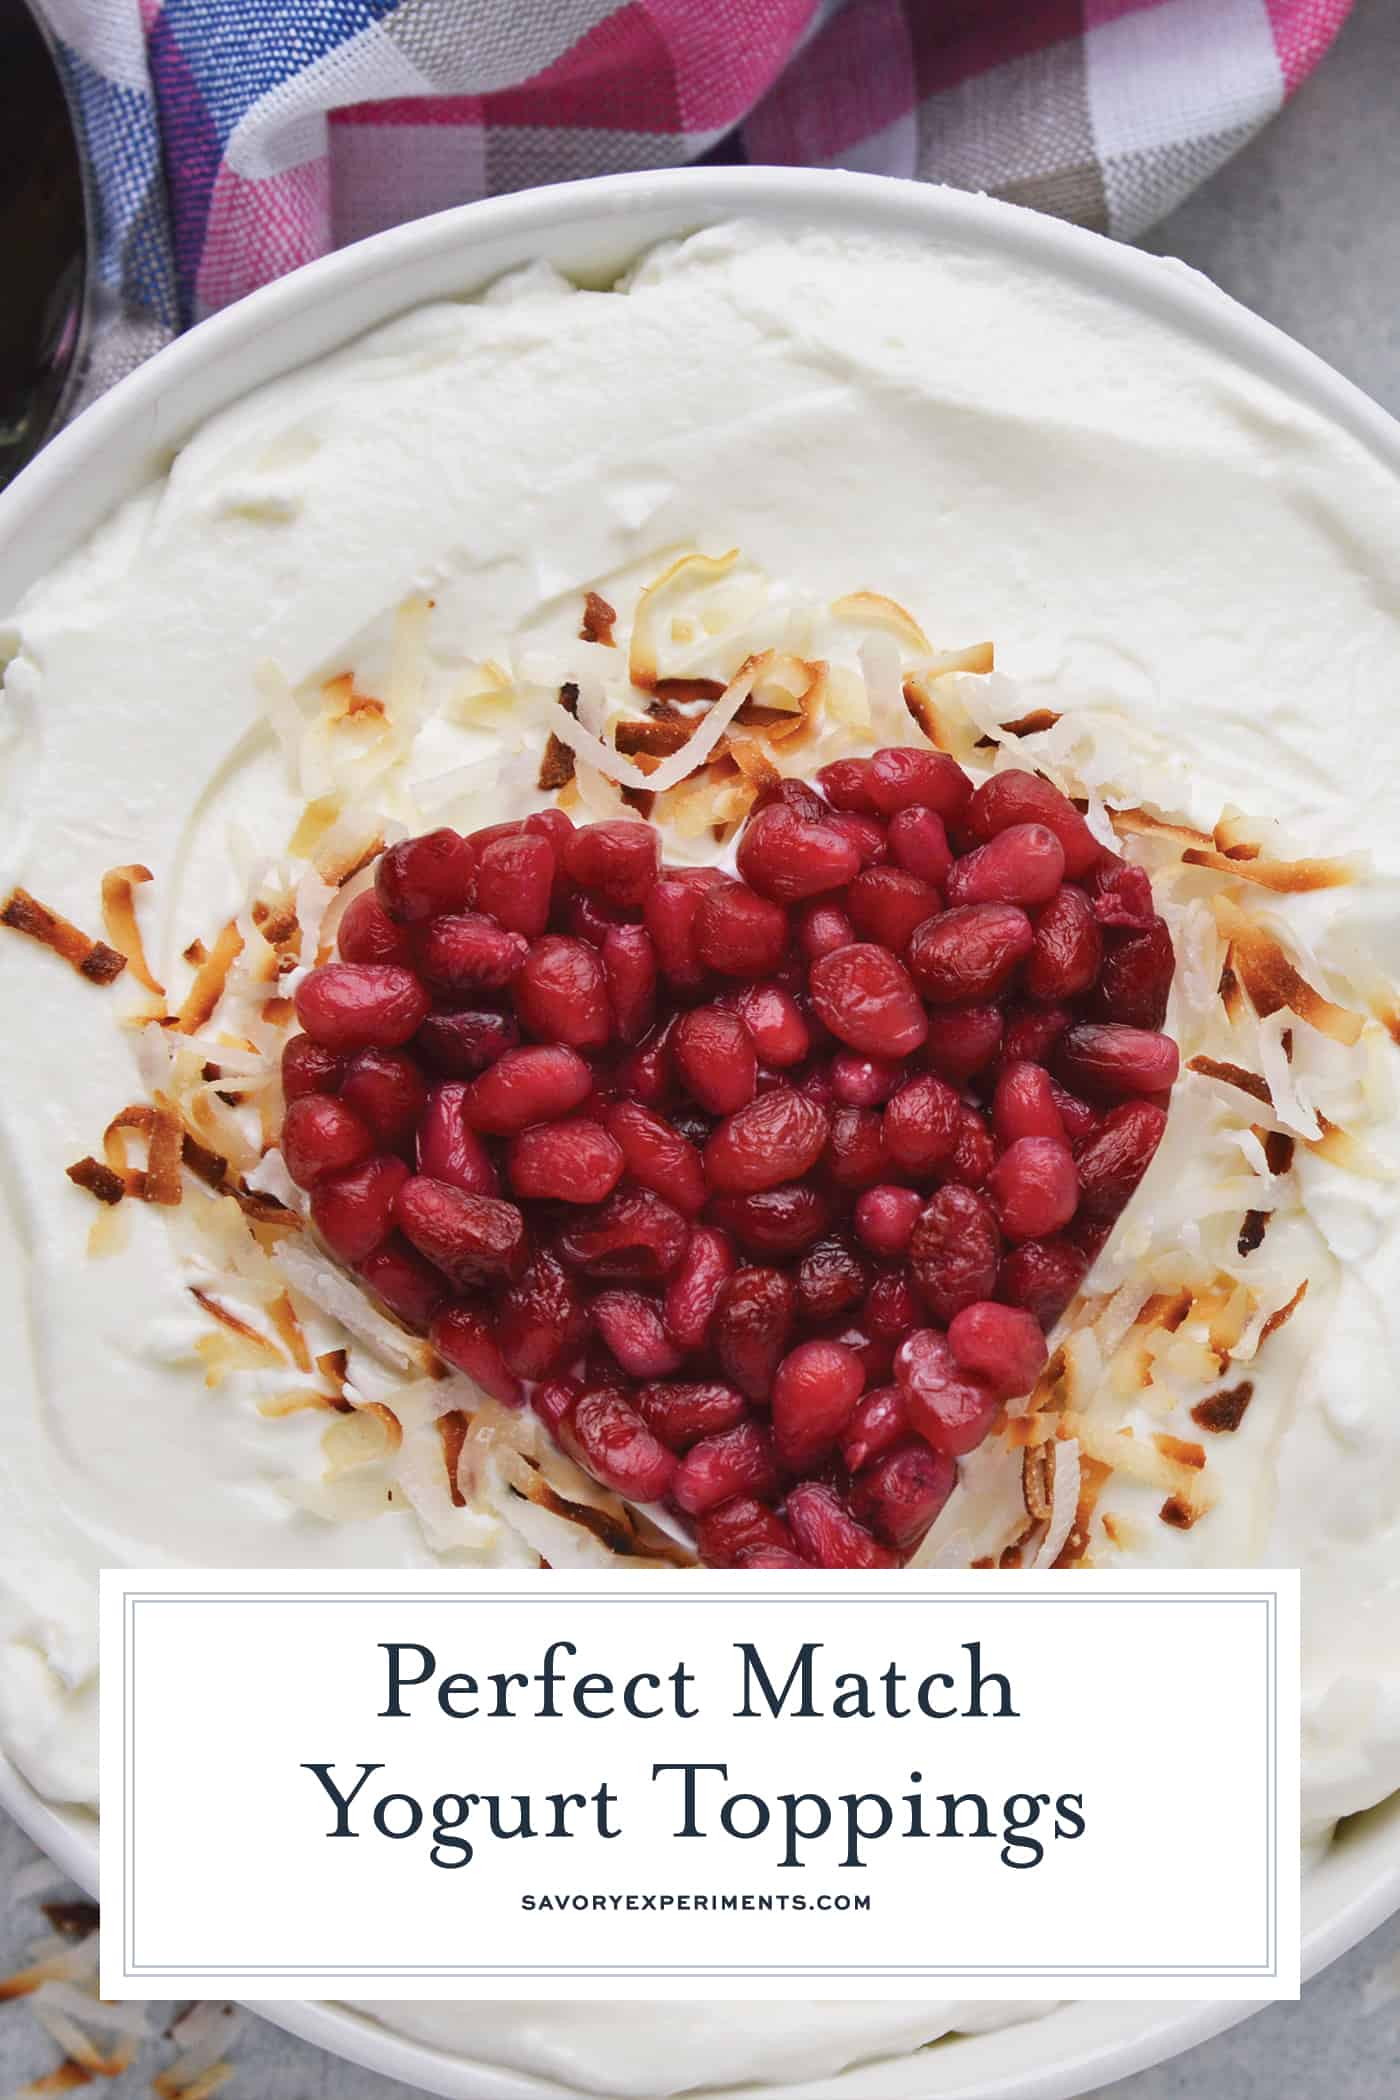 Discover your perfect Yogurt Match, FAGE Total is perfect for yogurt bowls, marinades, salad dressings, sour cream substitutes and even baking! AD #PlainExtraordinary #FAGE @FAGEUSA www.savoryexperiments.com